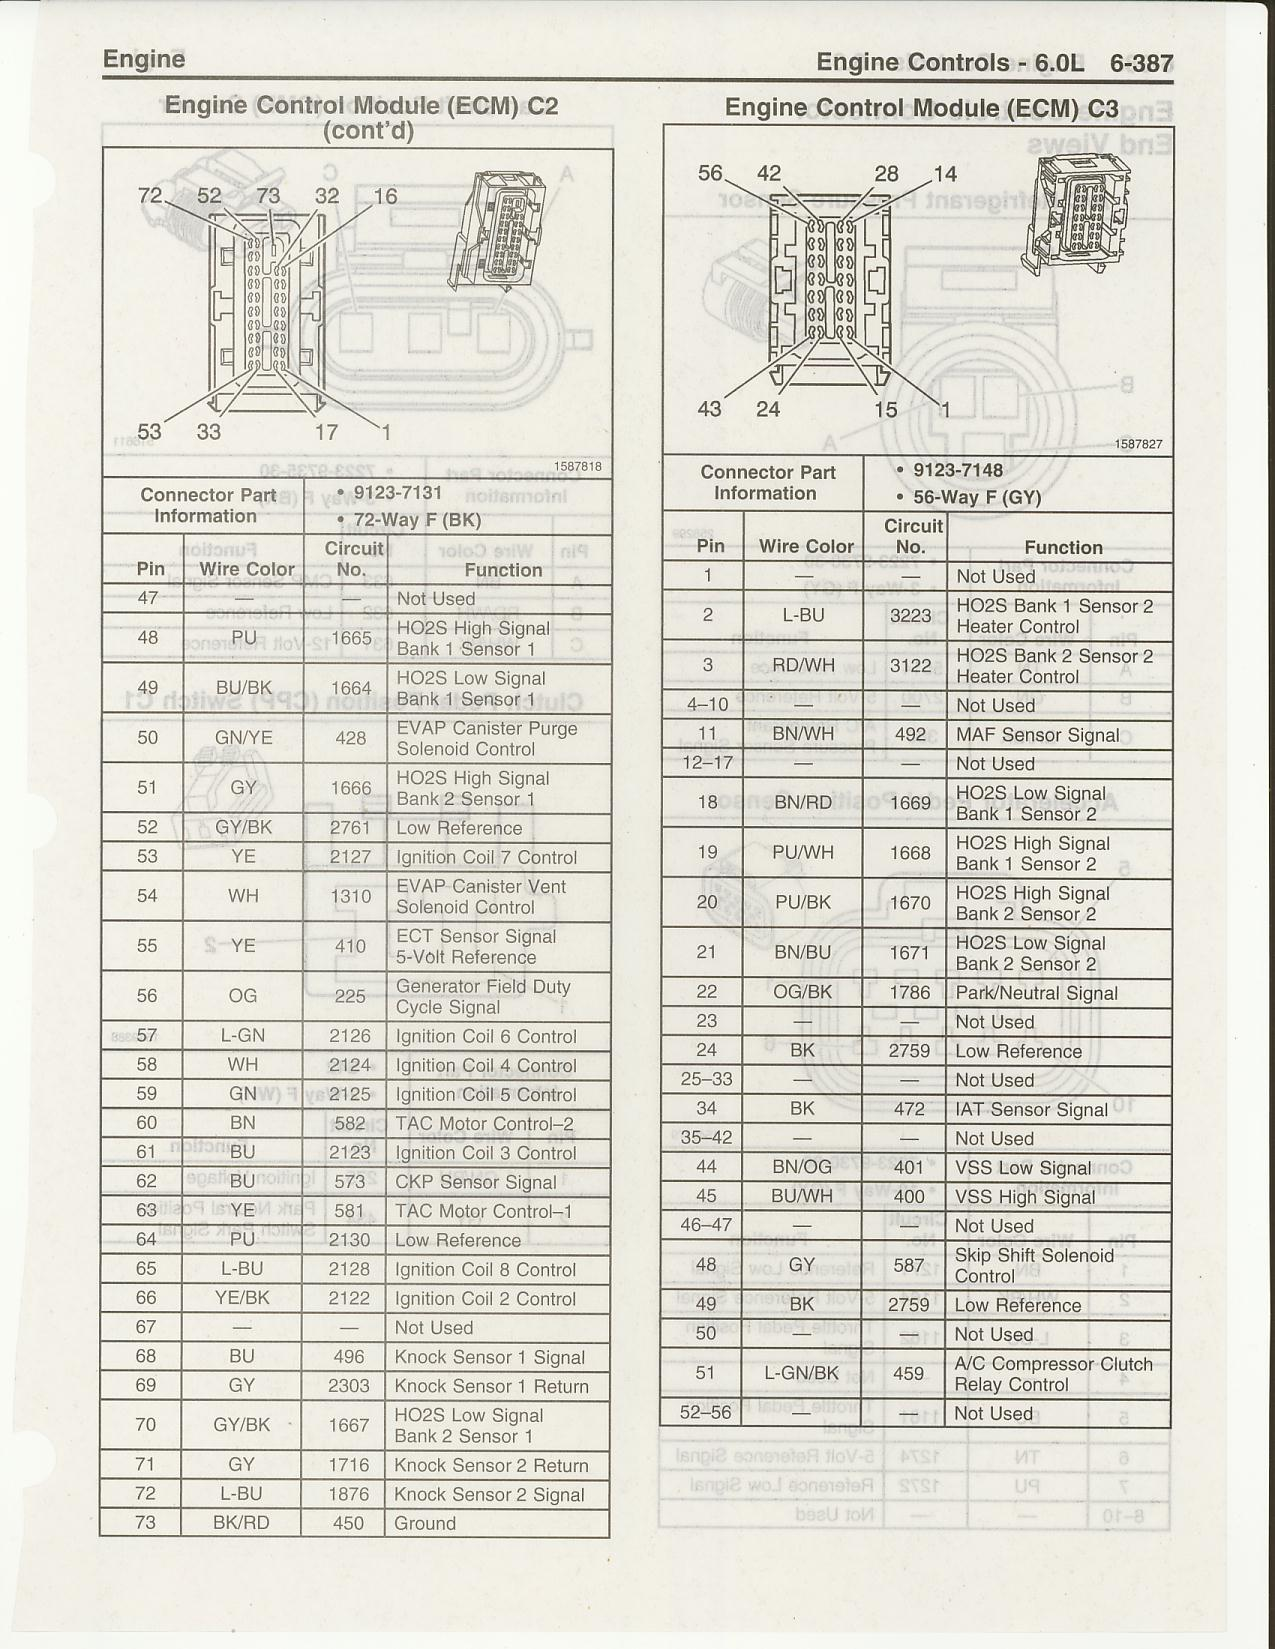 Pinouts and wiring diagrams - Page 4 - LS1TECH - Camaro and Firebird on ls1 engine wiring harness, 97 chevy wiring harness, 2002 chevy cavalier engine wiring harness,